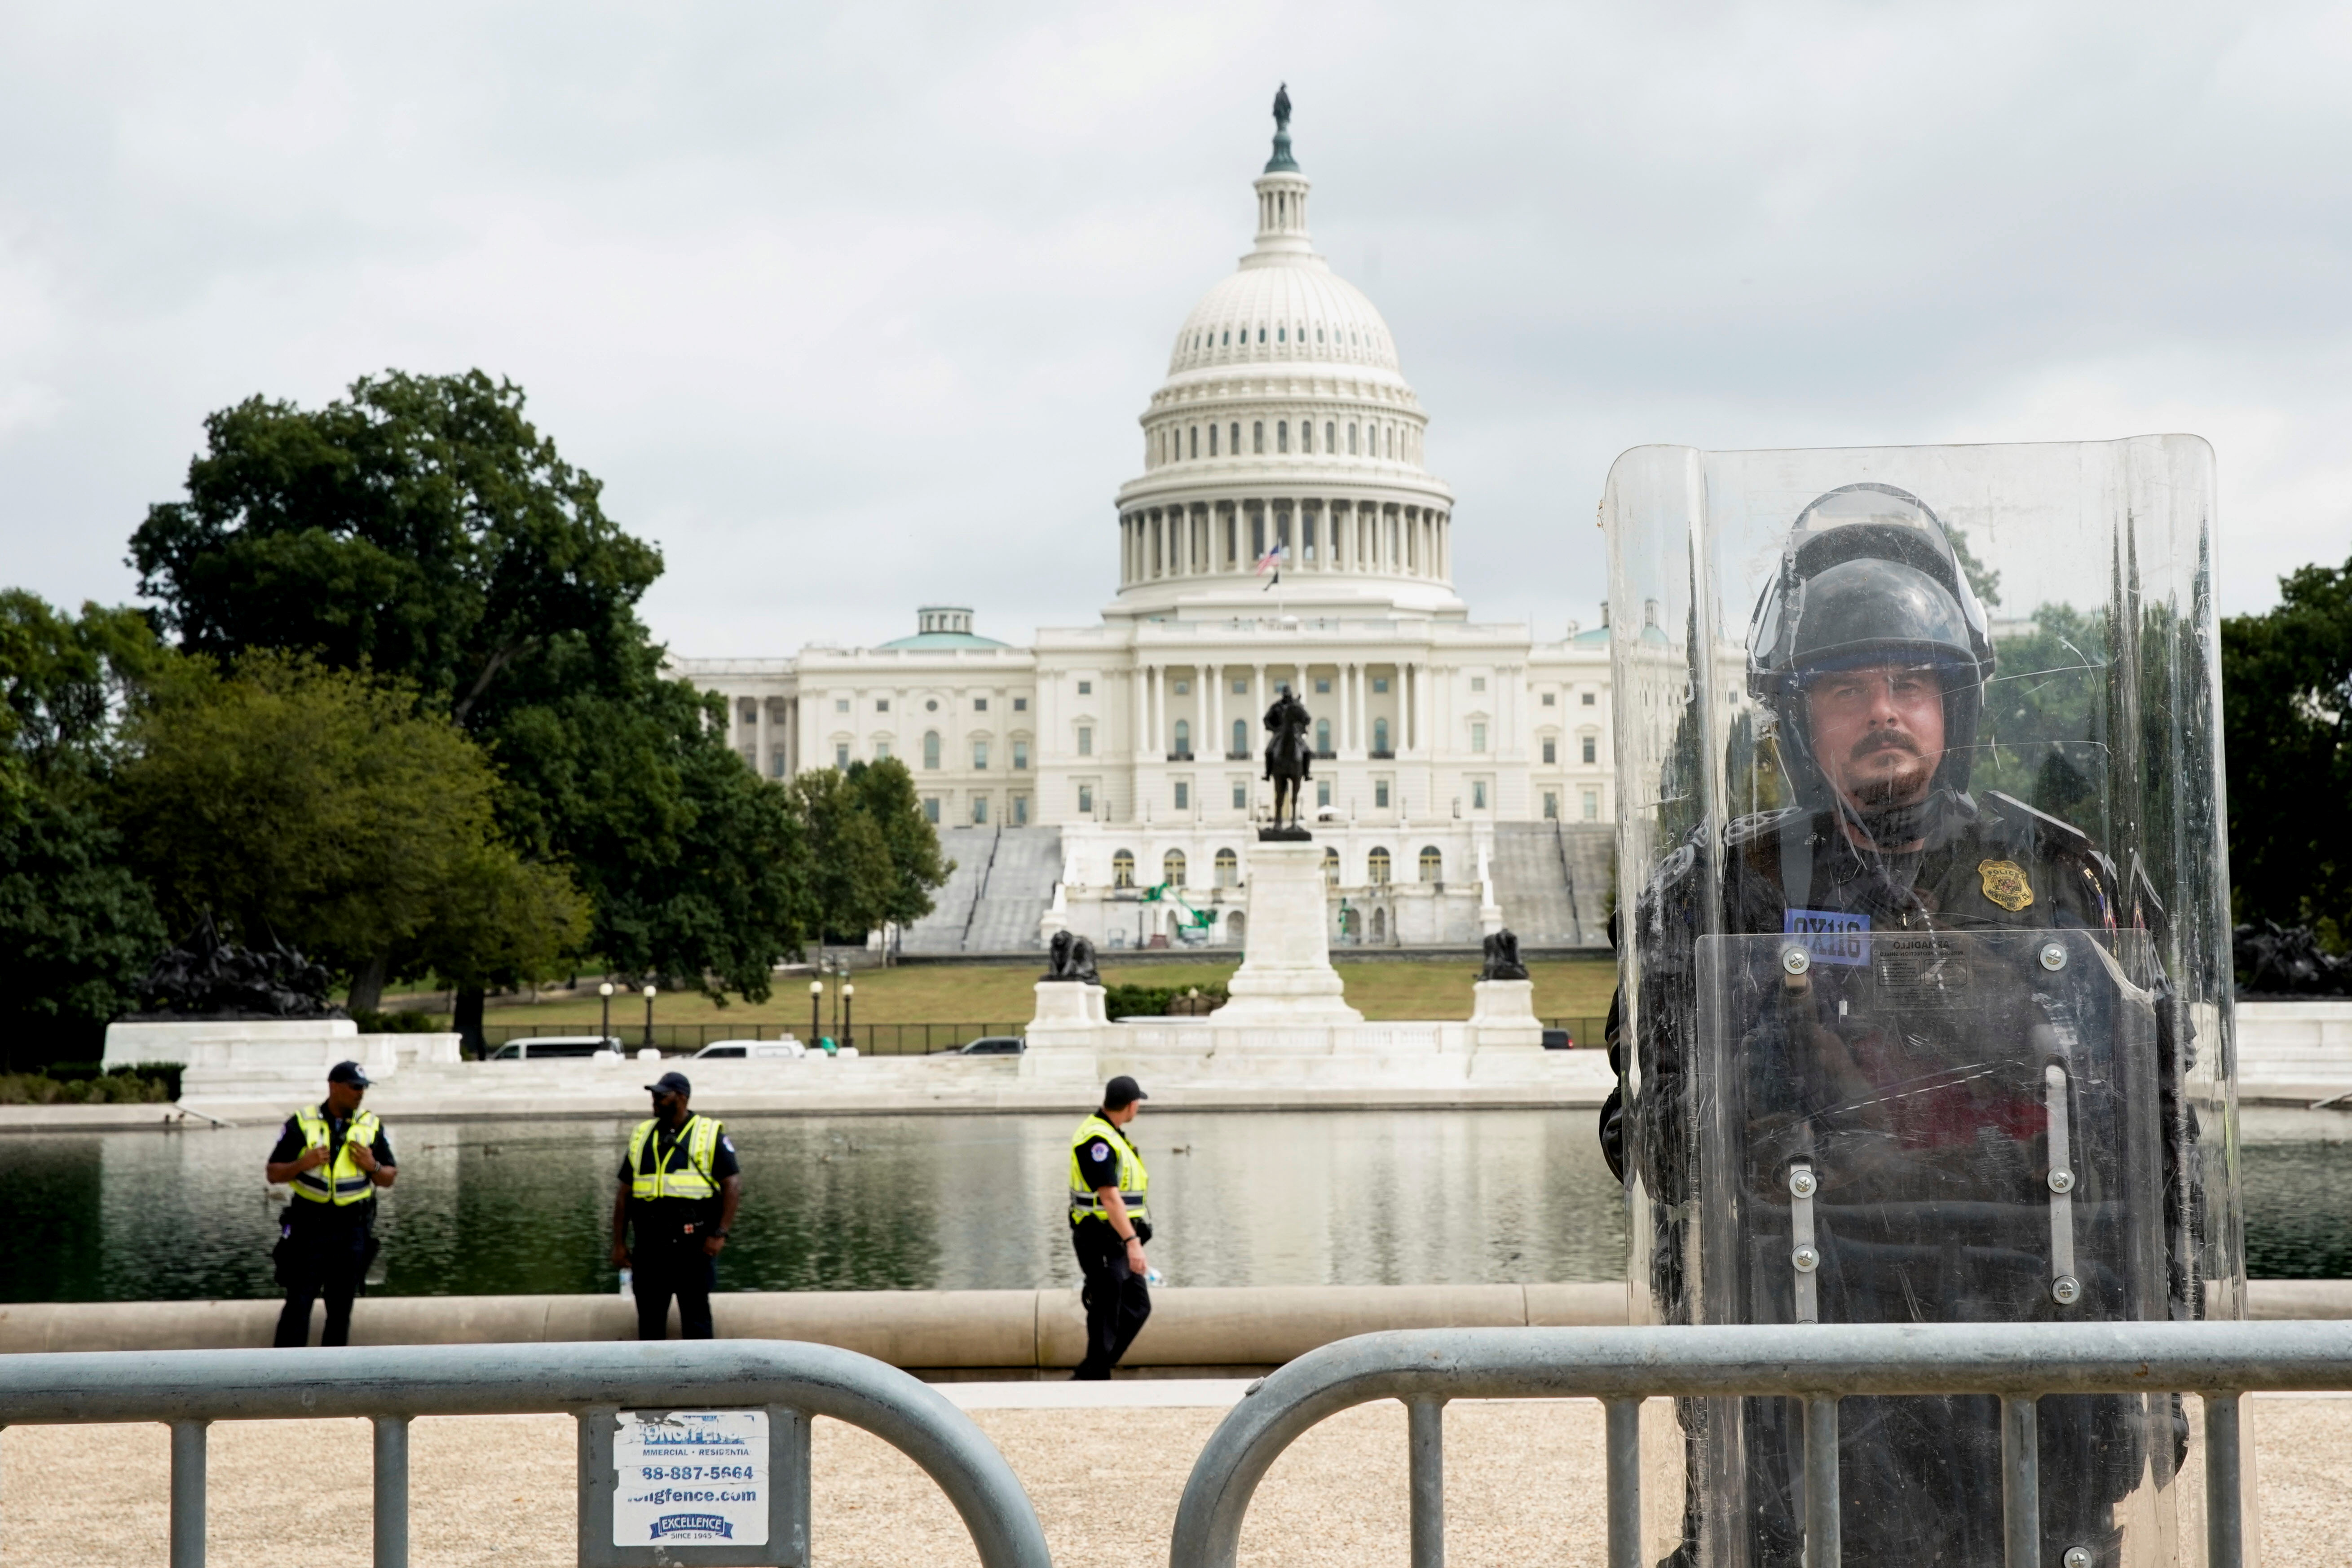 A riot police officer stands guard during a rally in support of defendants being prosecuted in the January 6 attack on the Capitol, in Washington, U.S., September 18, 2021. REUTERS/Elizabeth Frantz